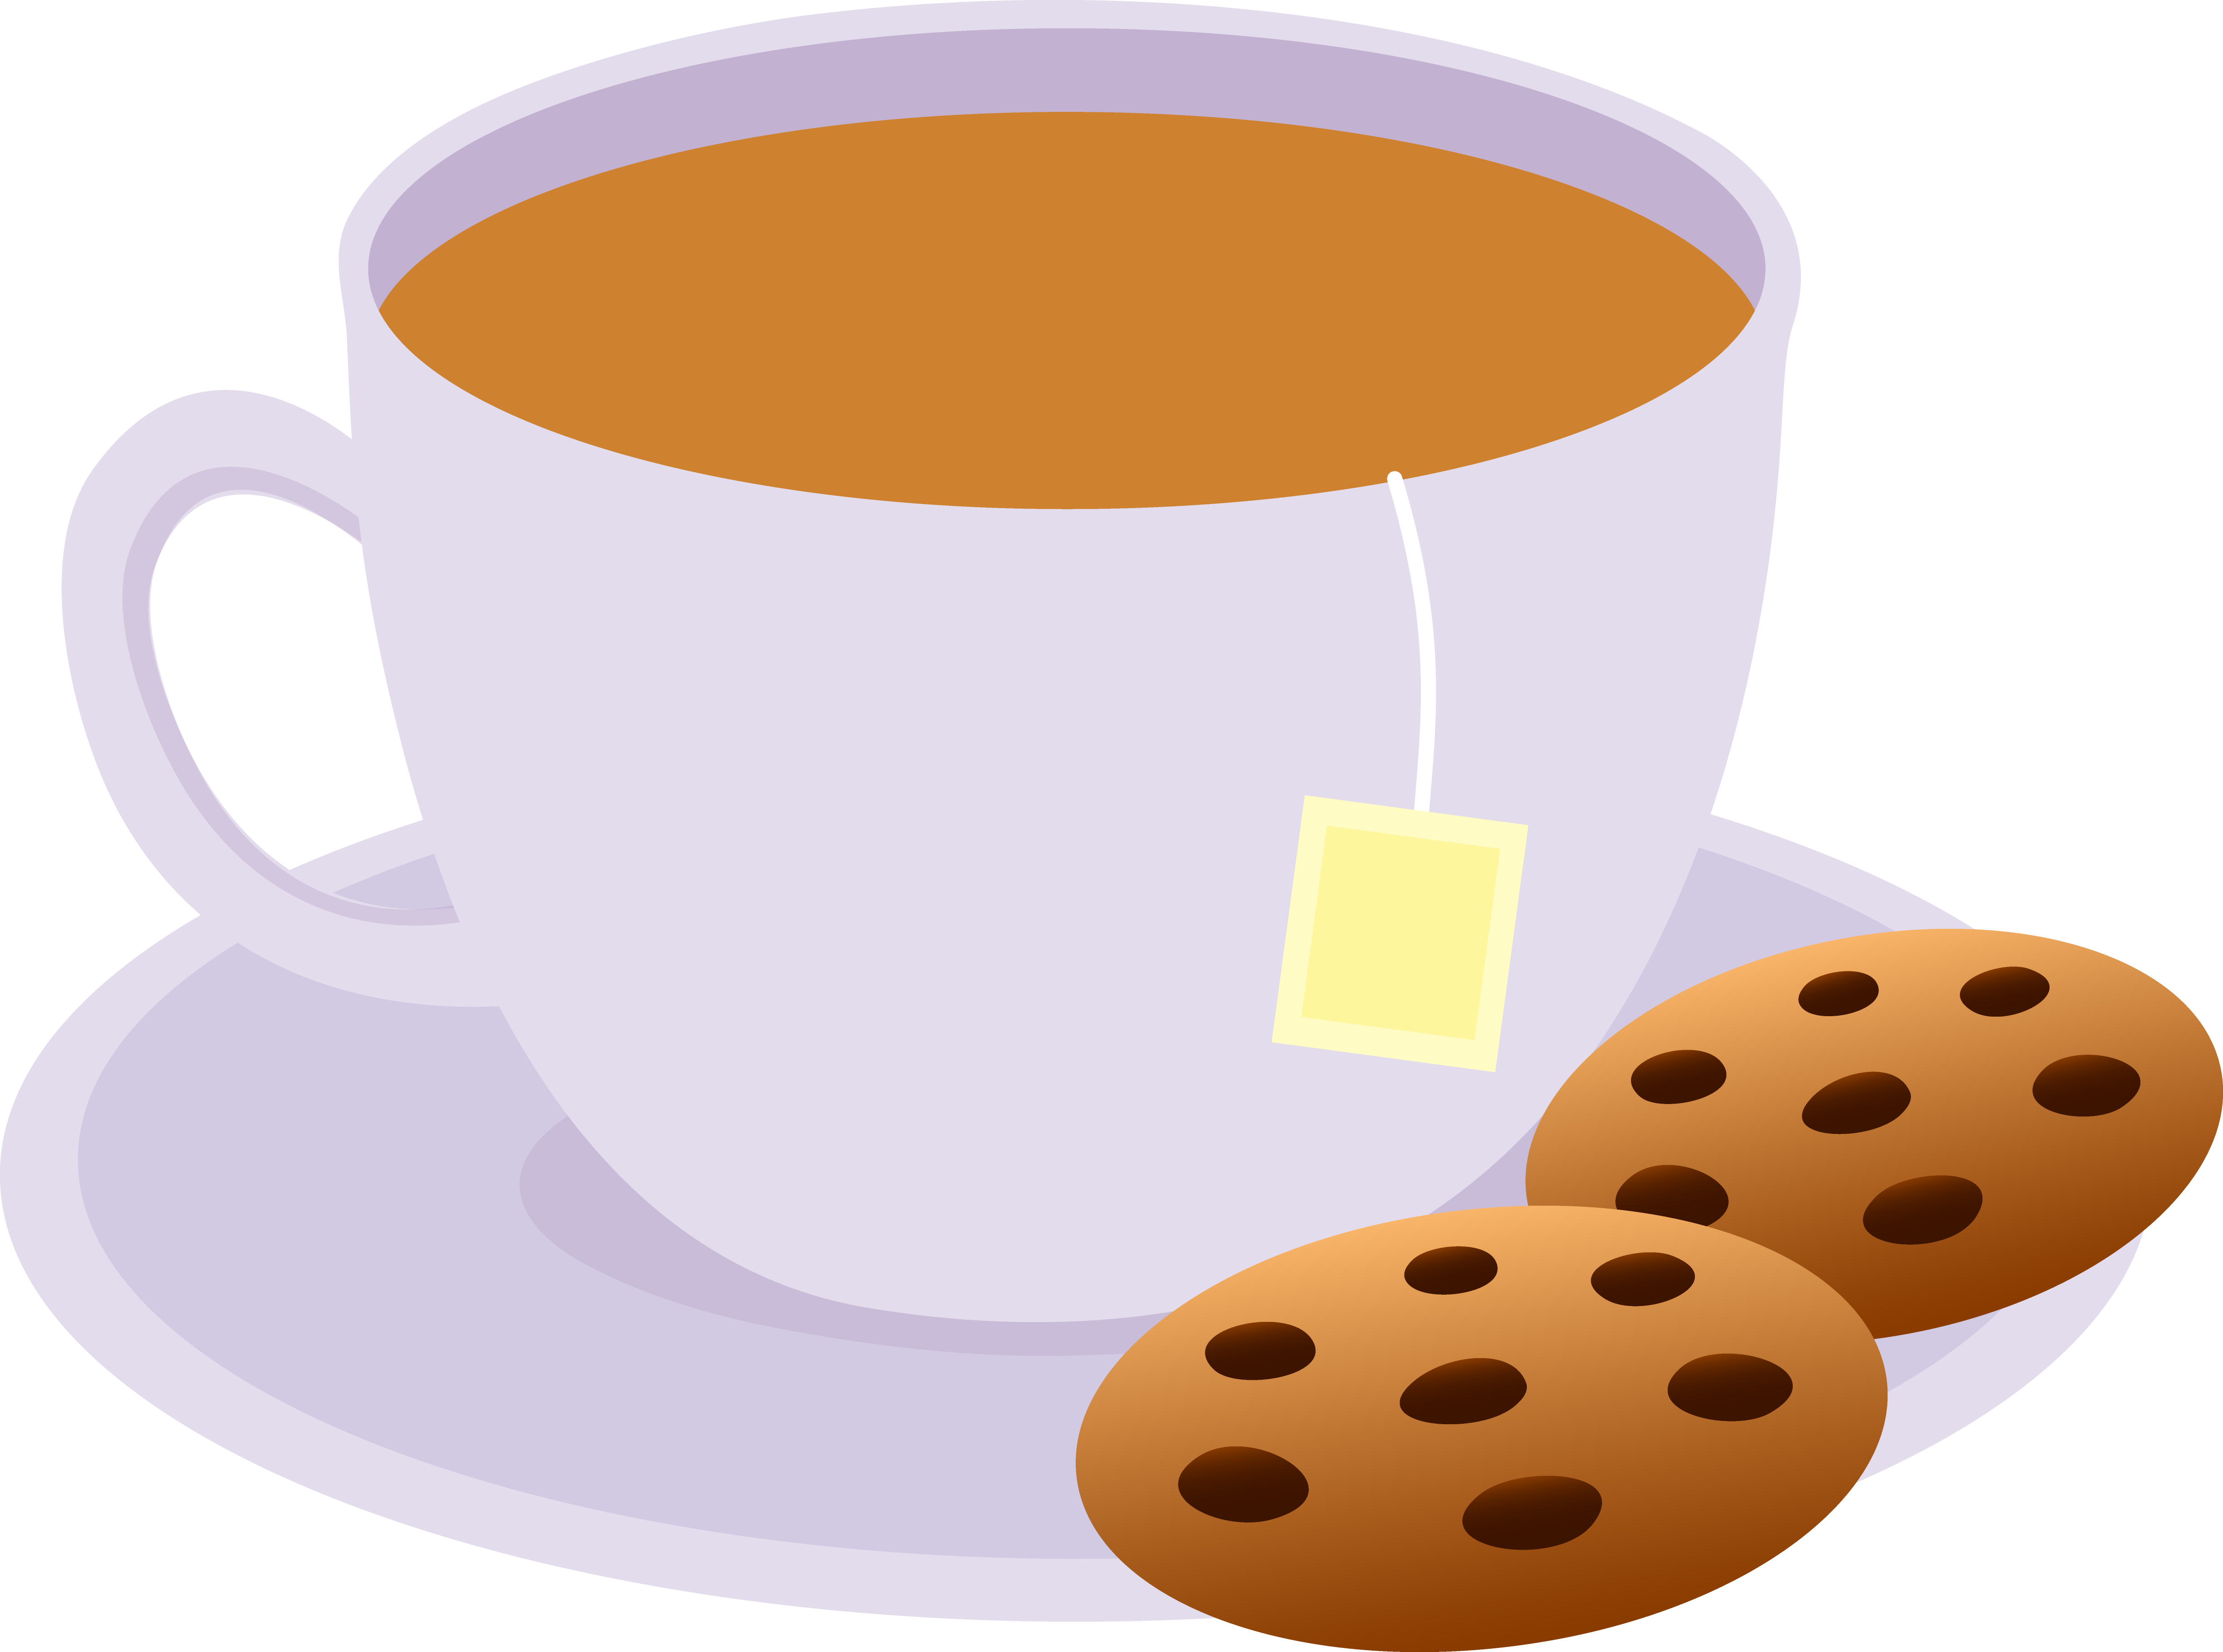 Coffee and cookies clipart clipart free stock Clipart Of Evening, Tea And Cookies - Coffee Cup ... clipart free stock